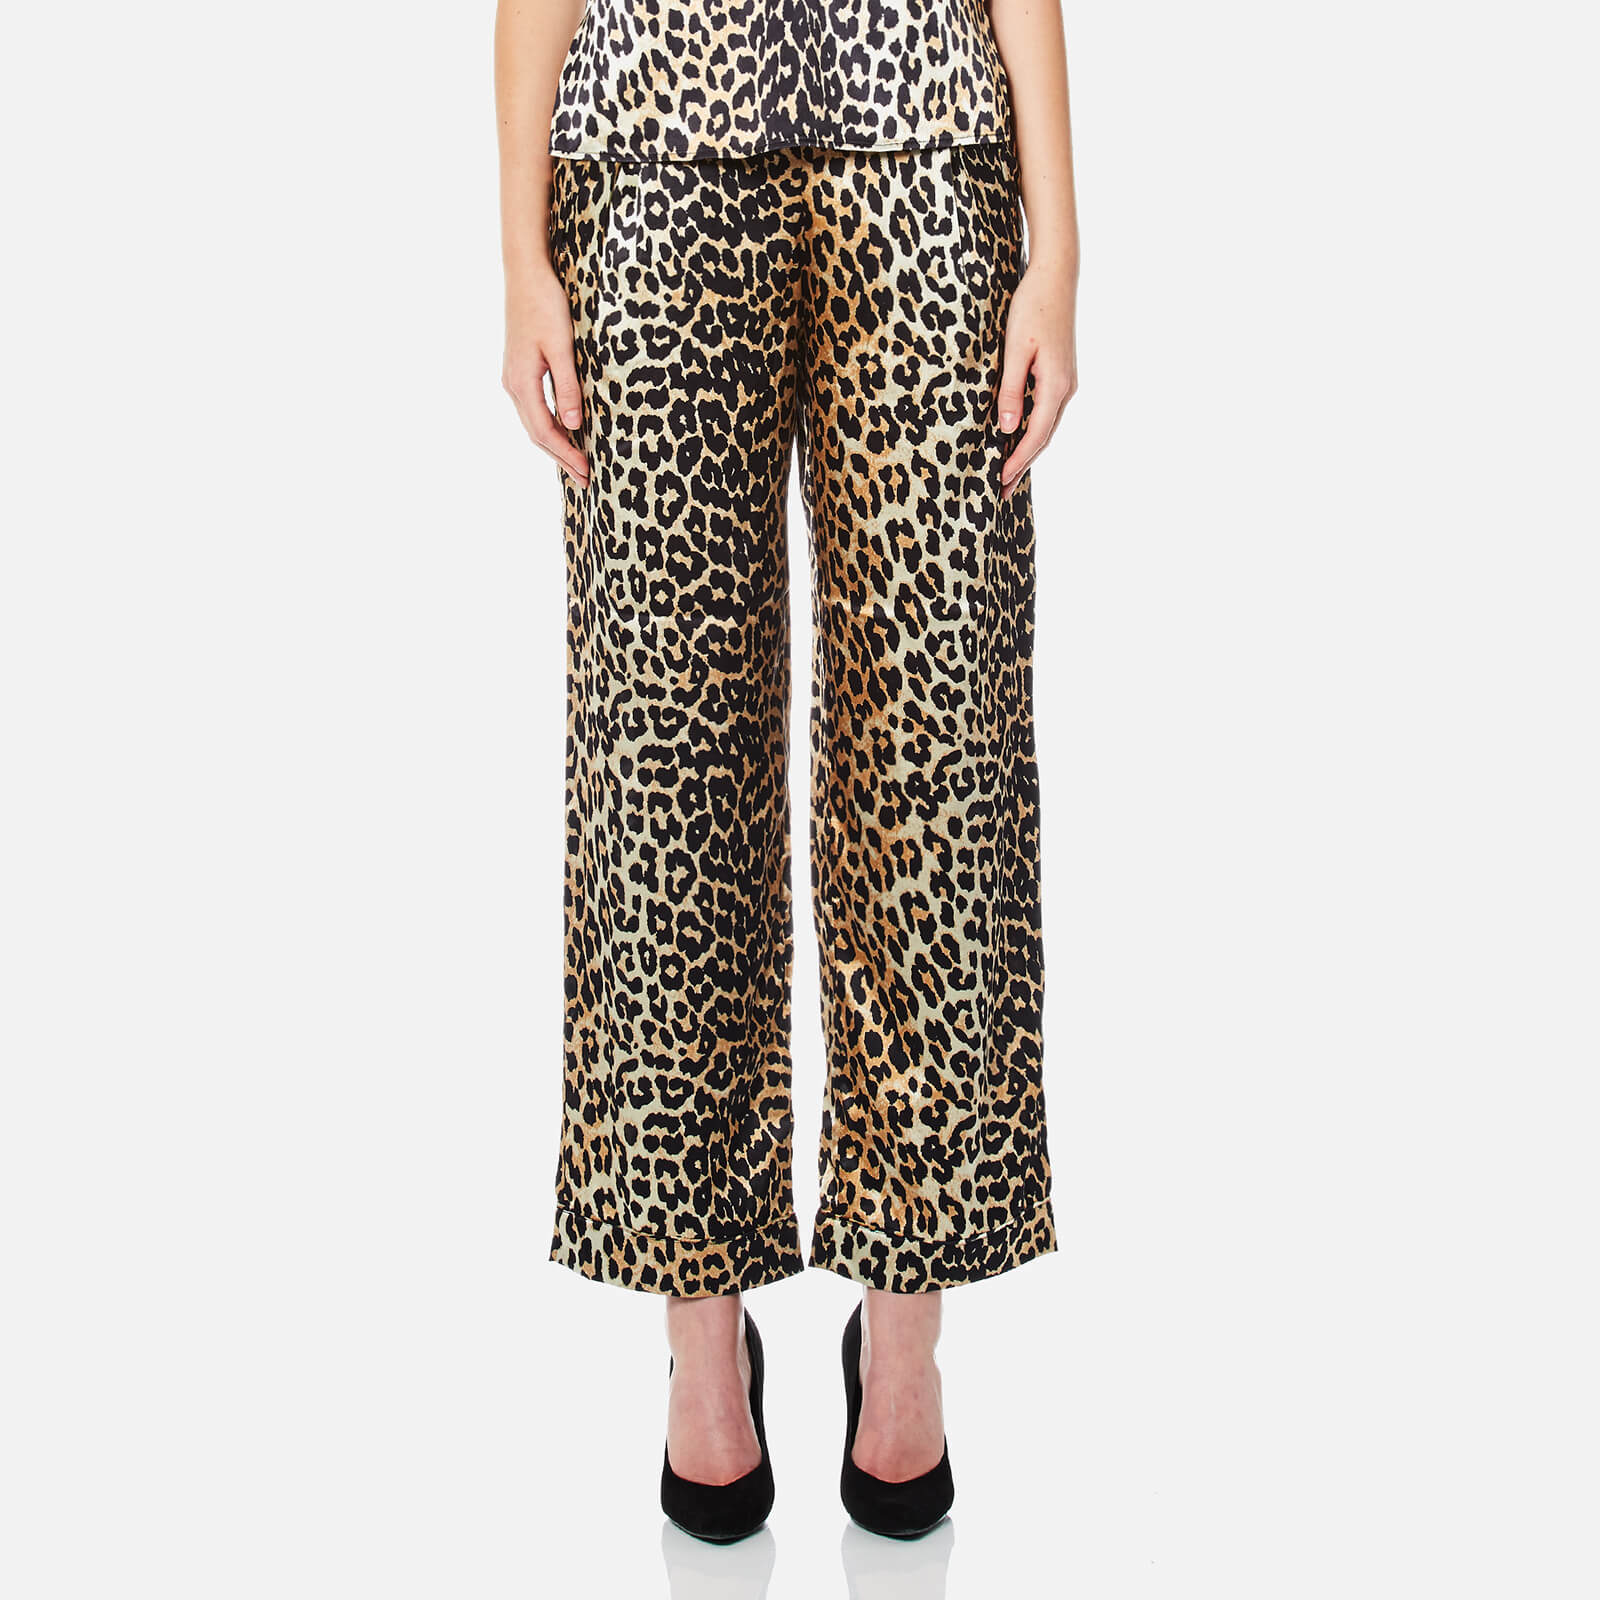 39c9e4a38827 Ganni Women's Dufort Silk Trousers - Leopard - Free UK Delivery over £50